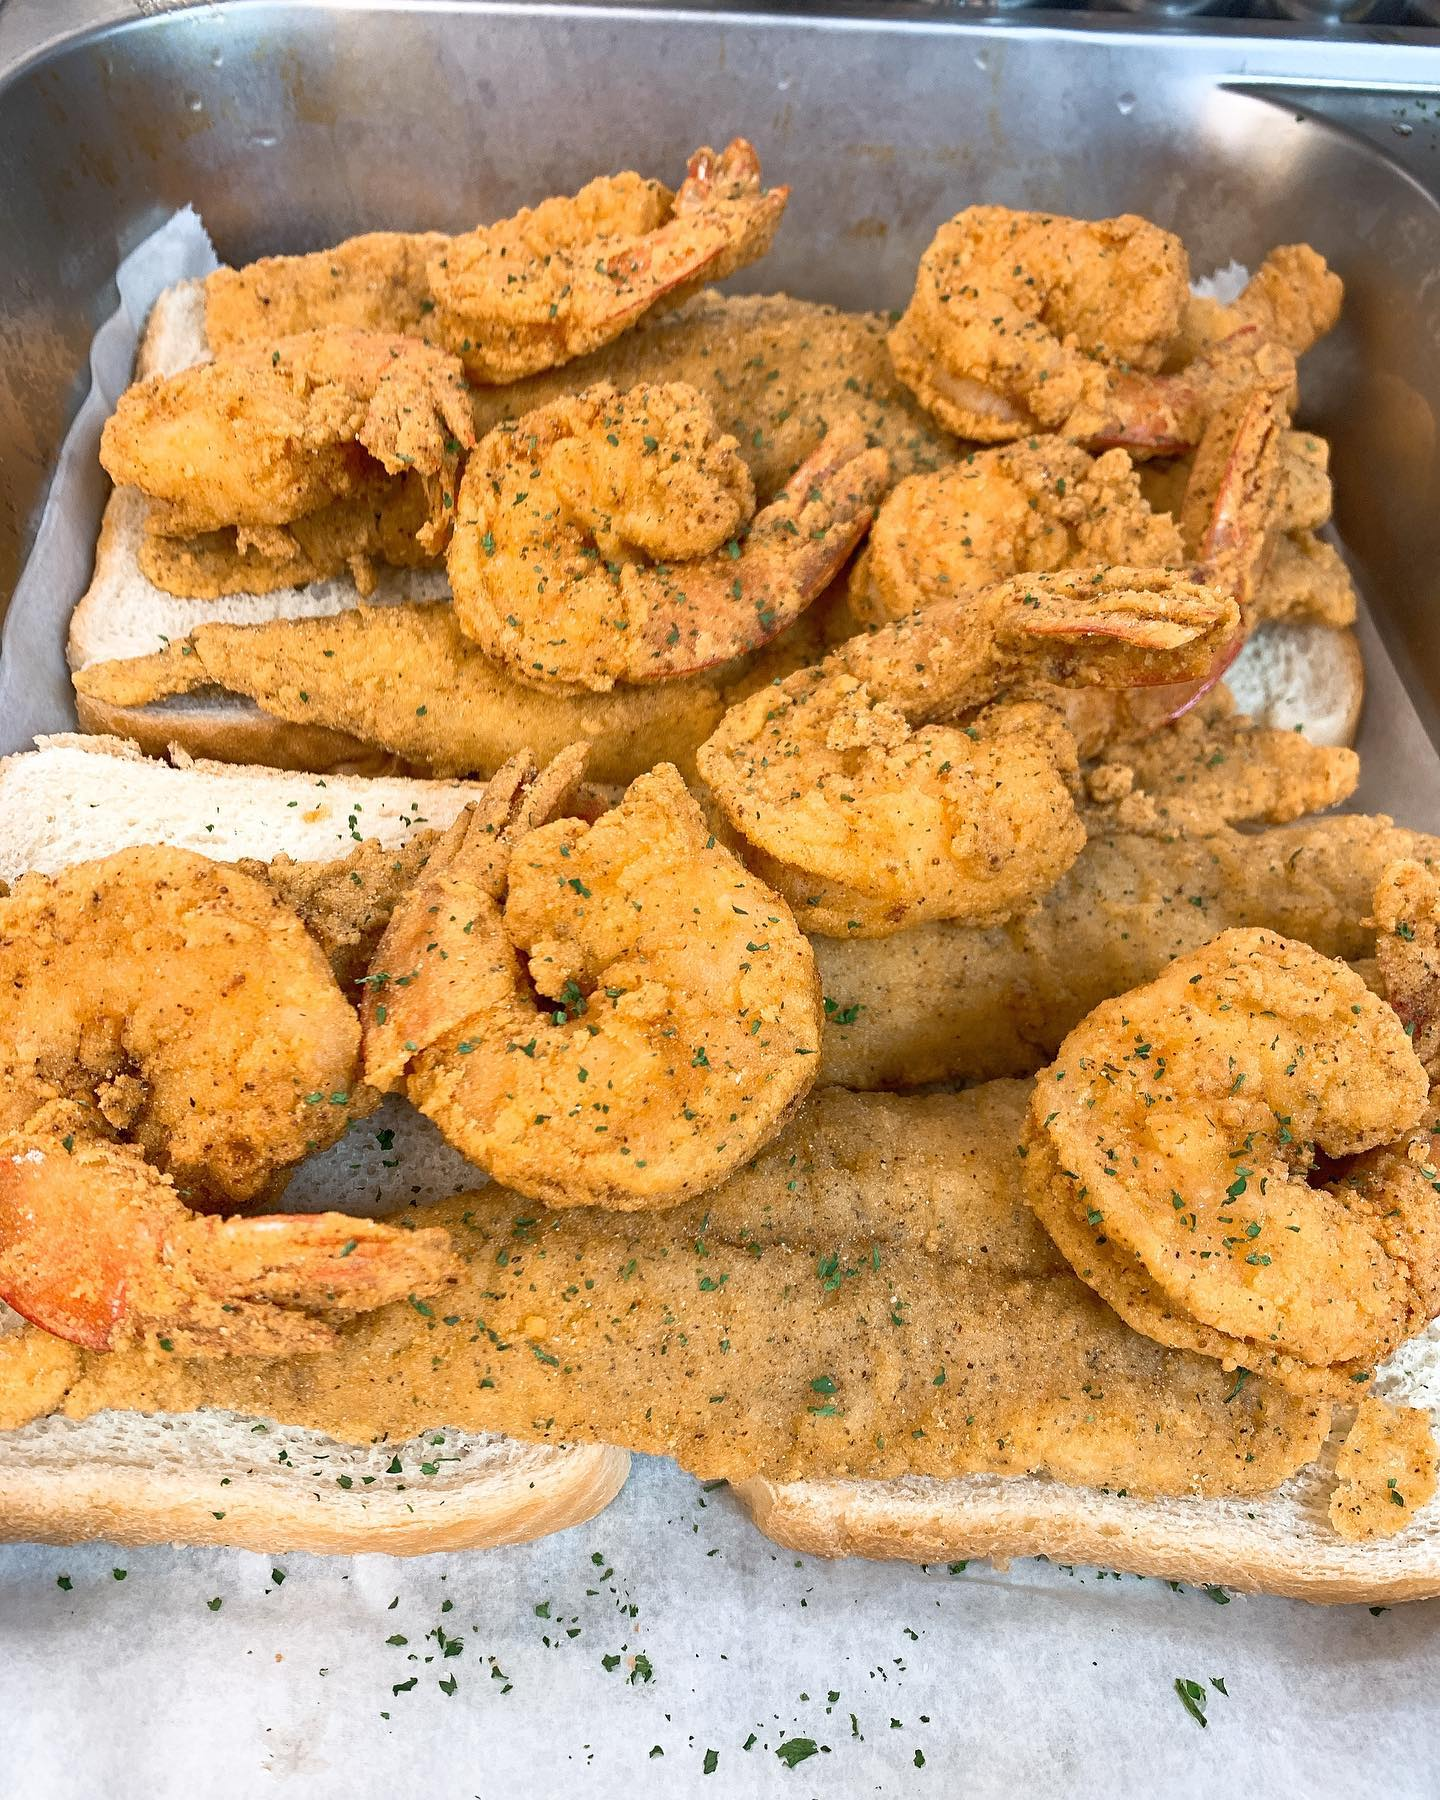 fried fish and shrimp platter